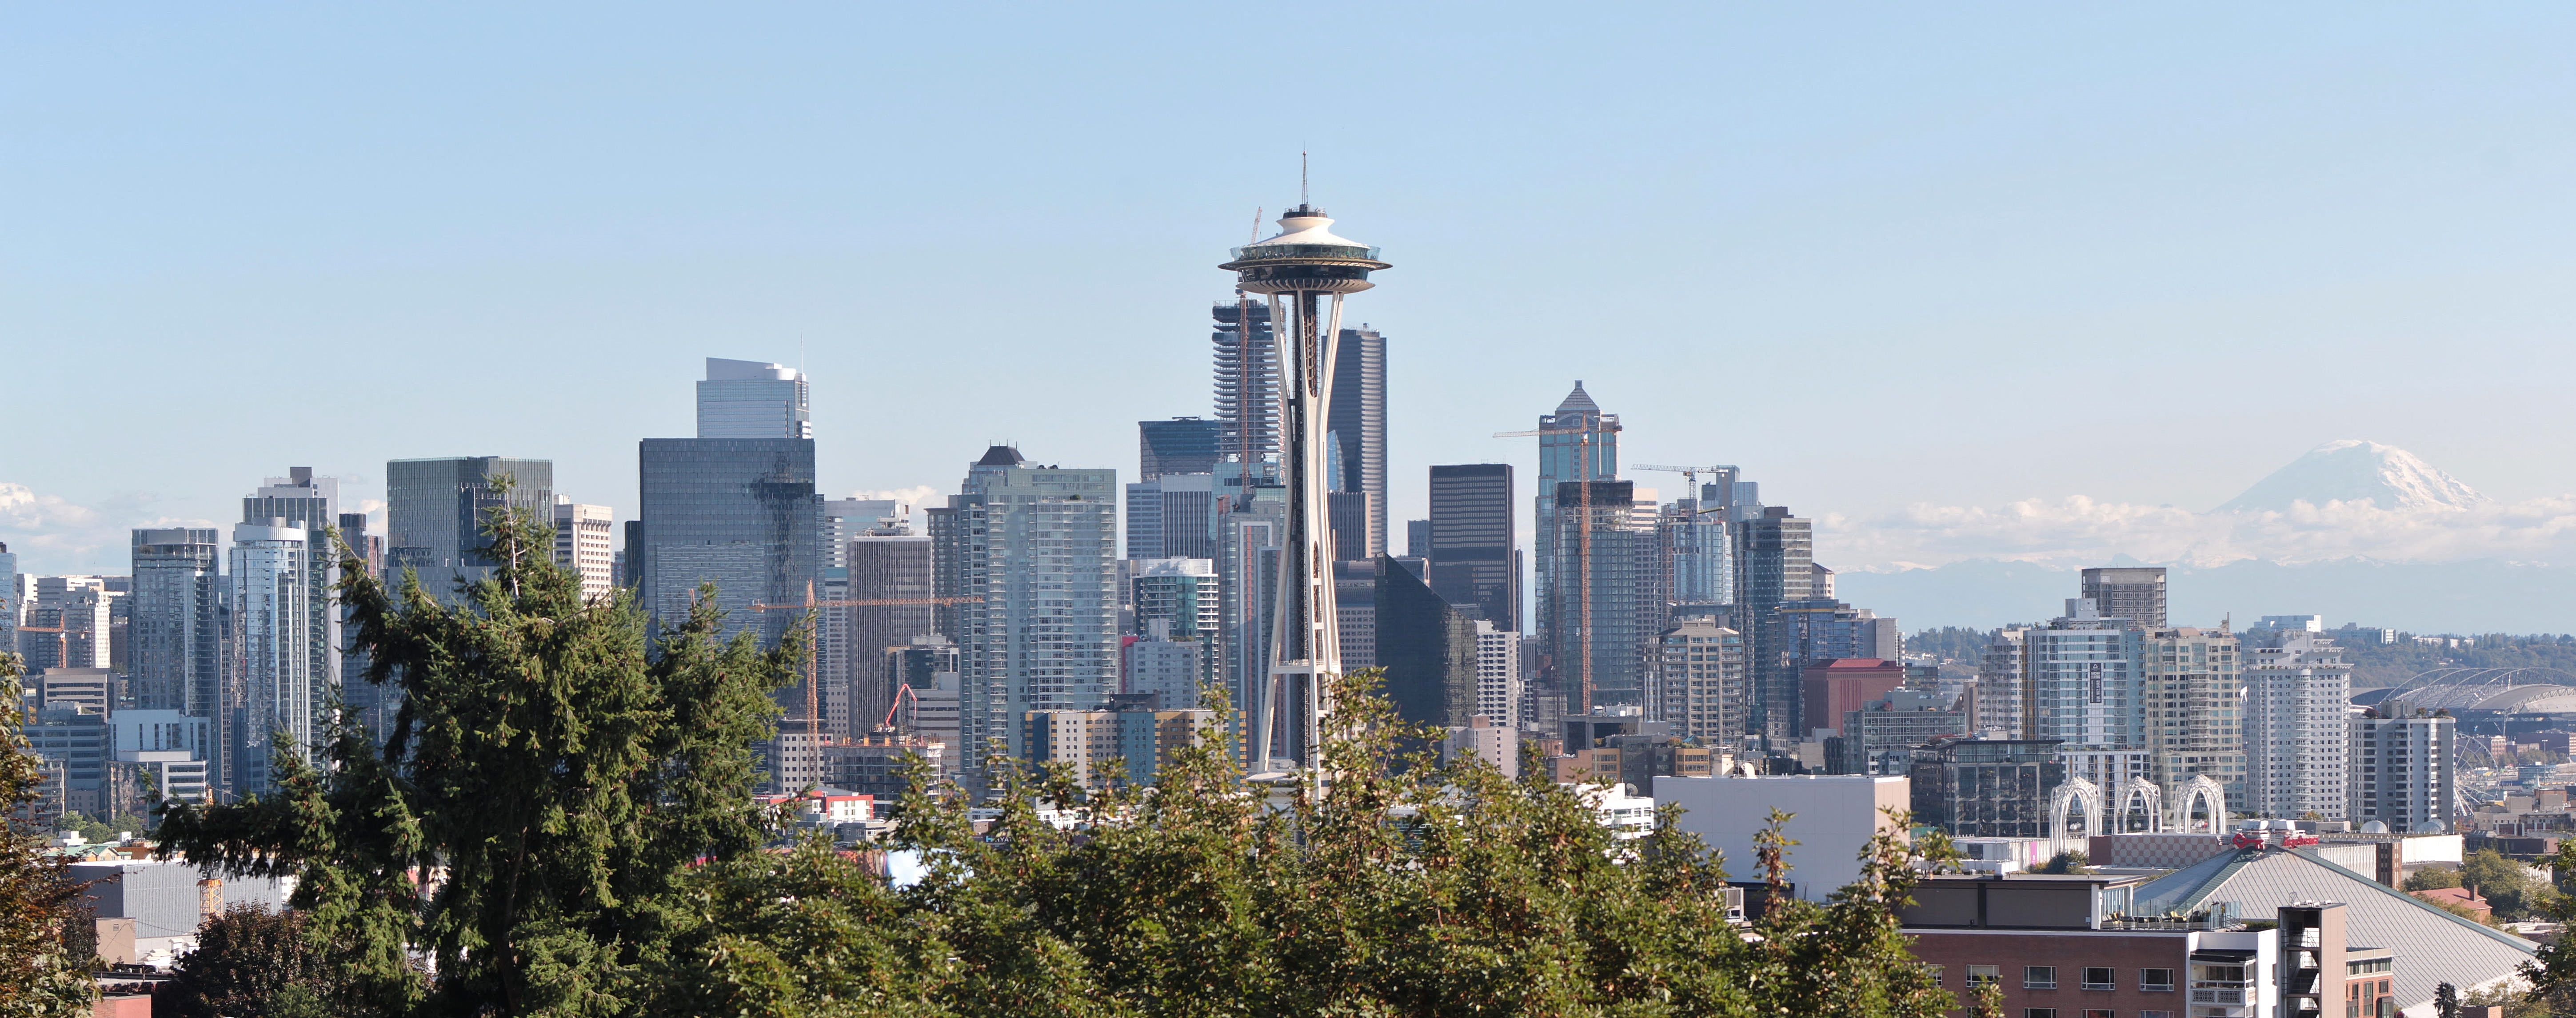 List Of Tallest Buildings In Seattle Wikipedia